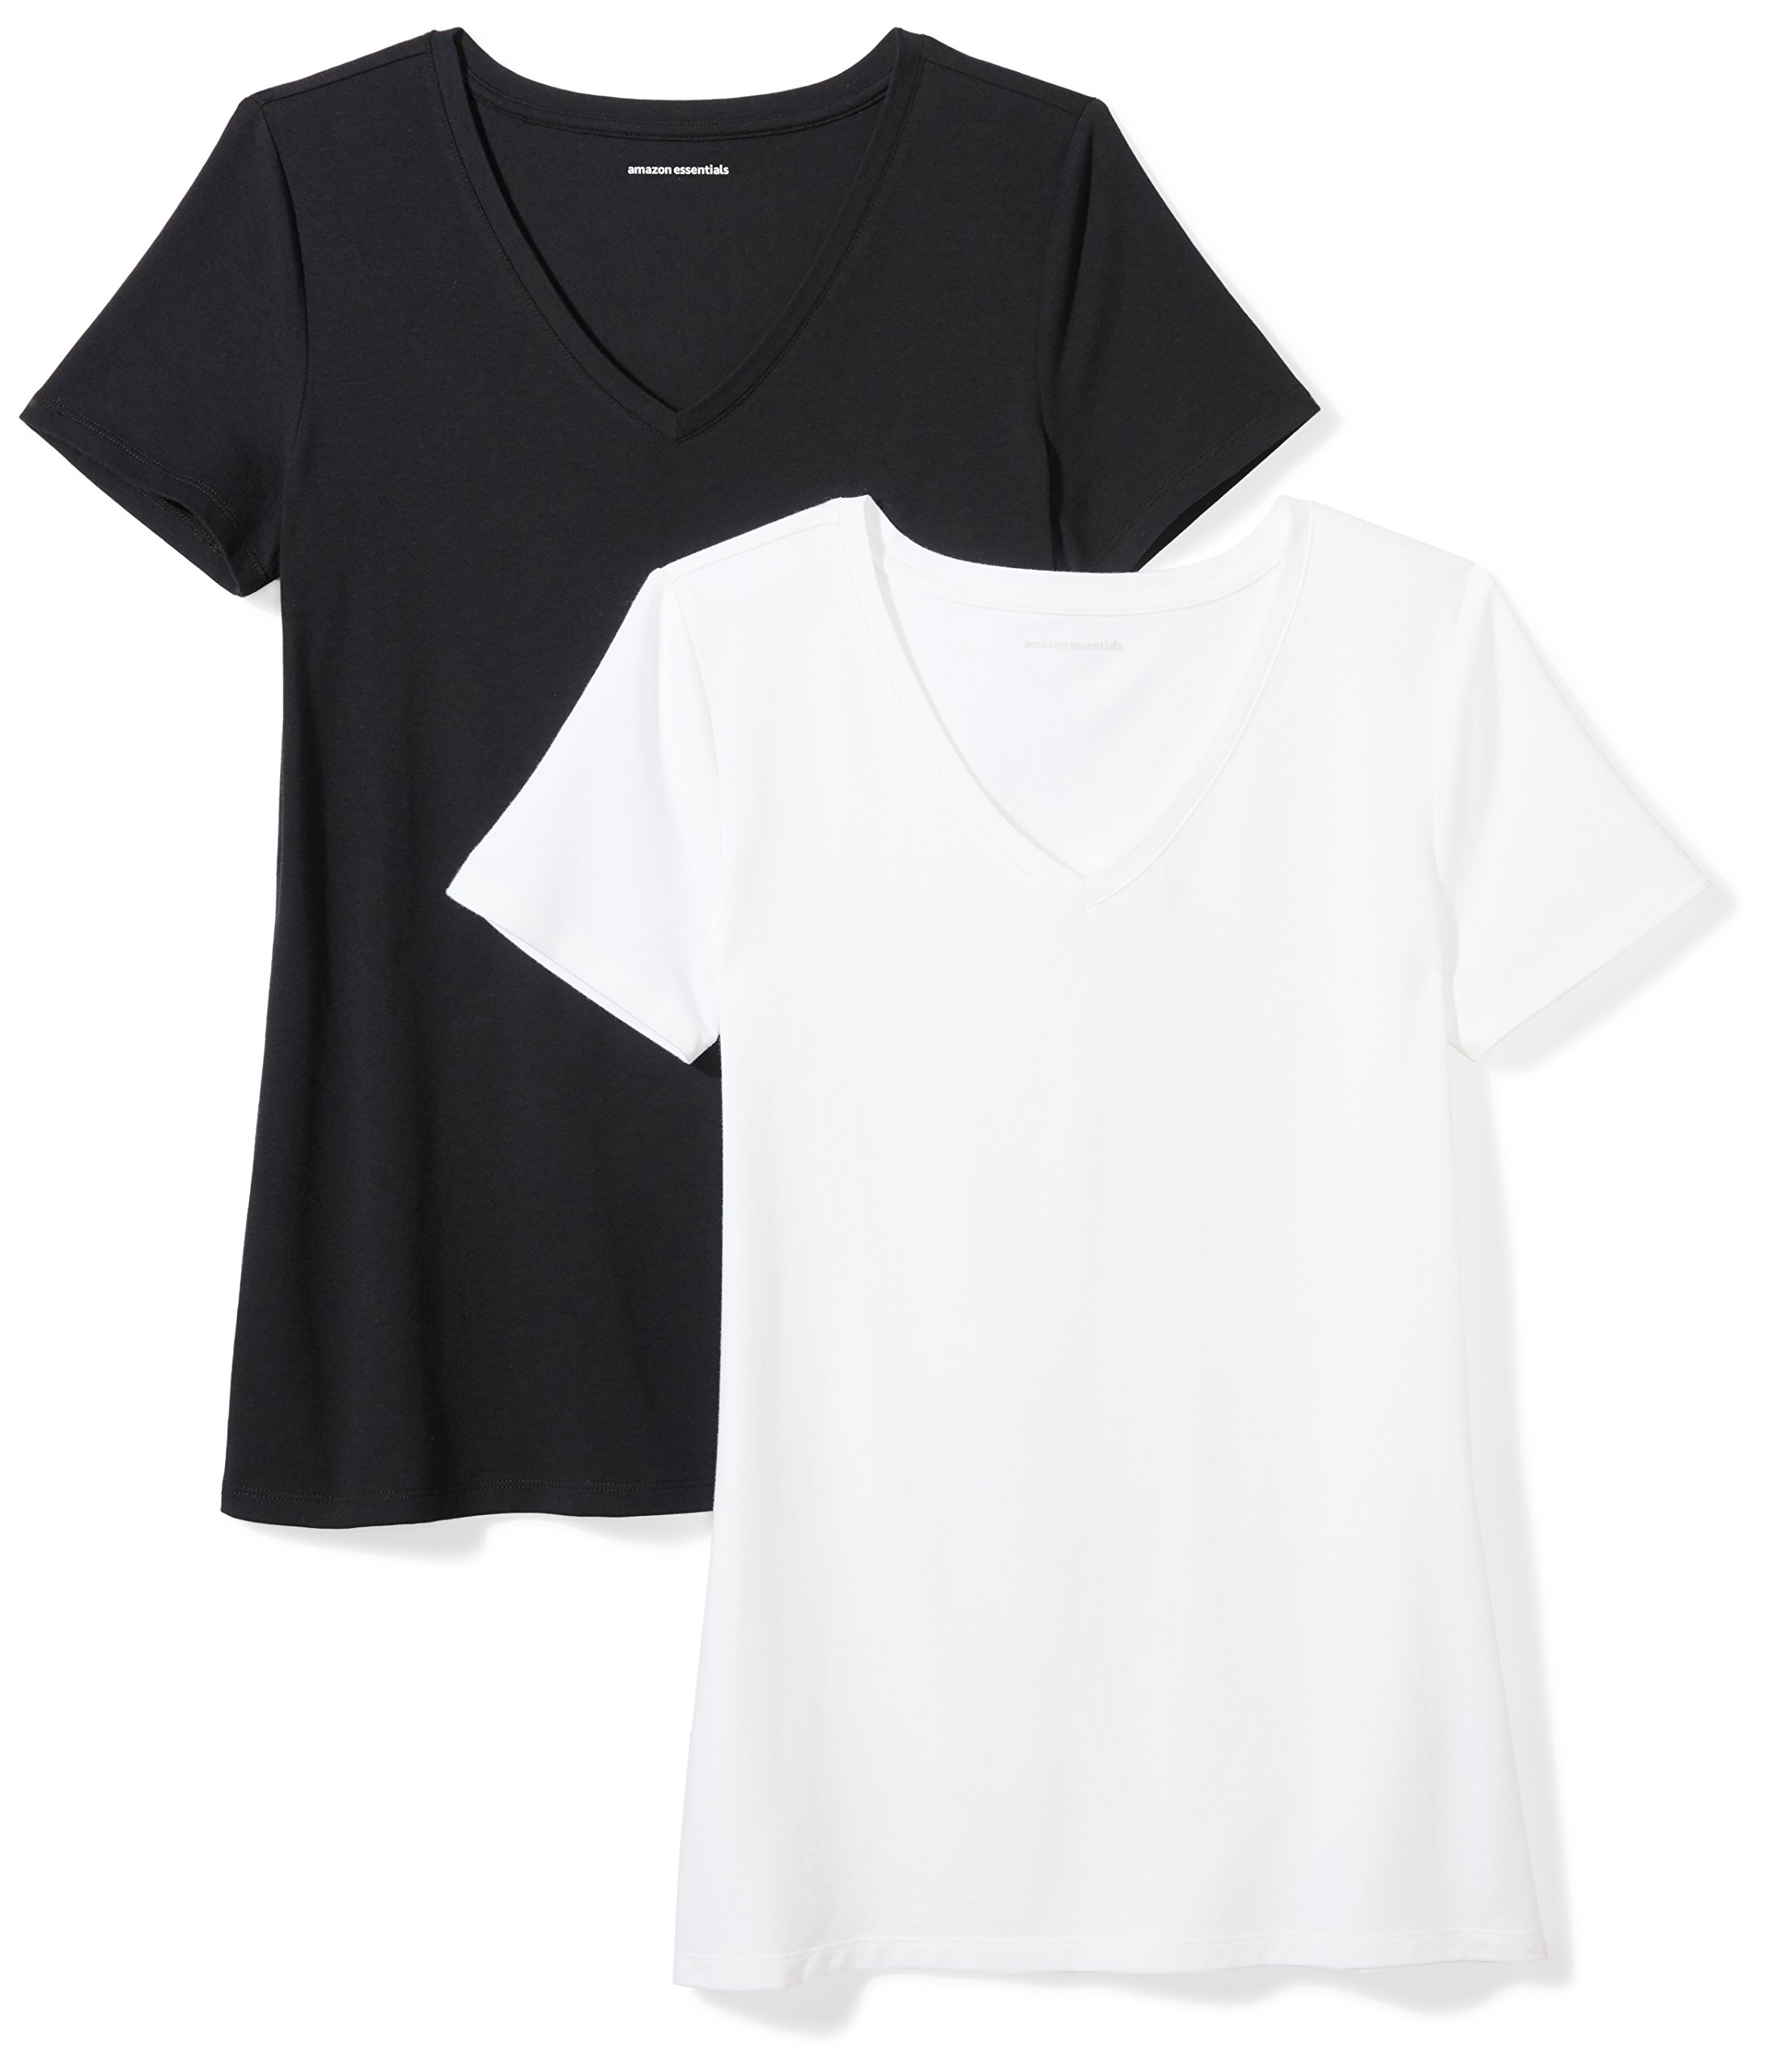 Amazon Essentials Women's 2-Pack Short-Sleeve V-Neck Solid T-Shirt, Black/White, Small